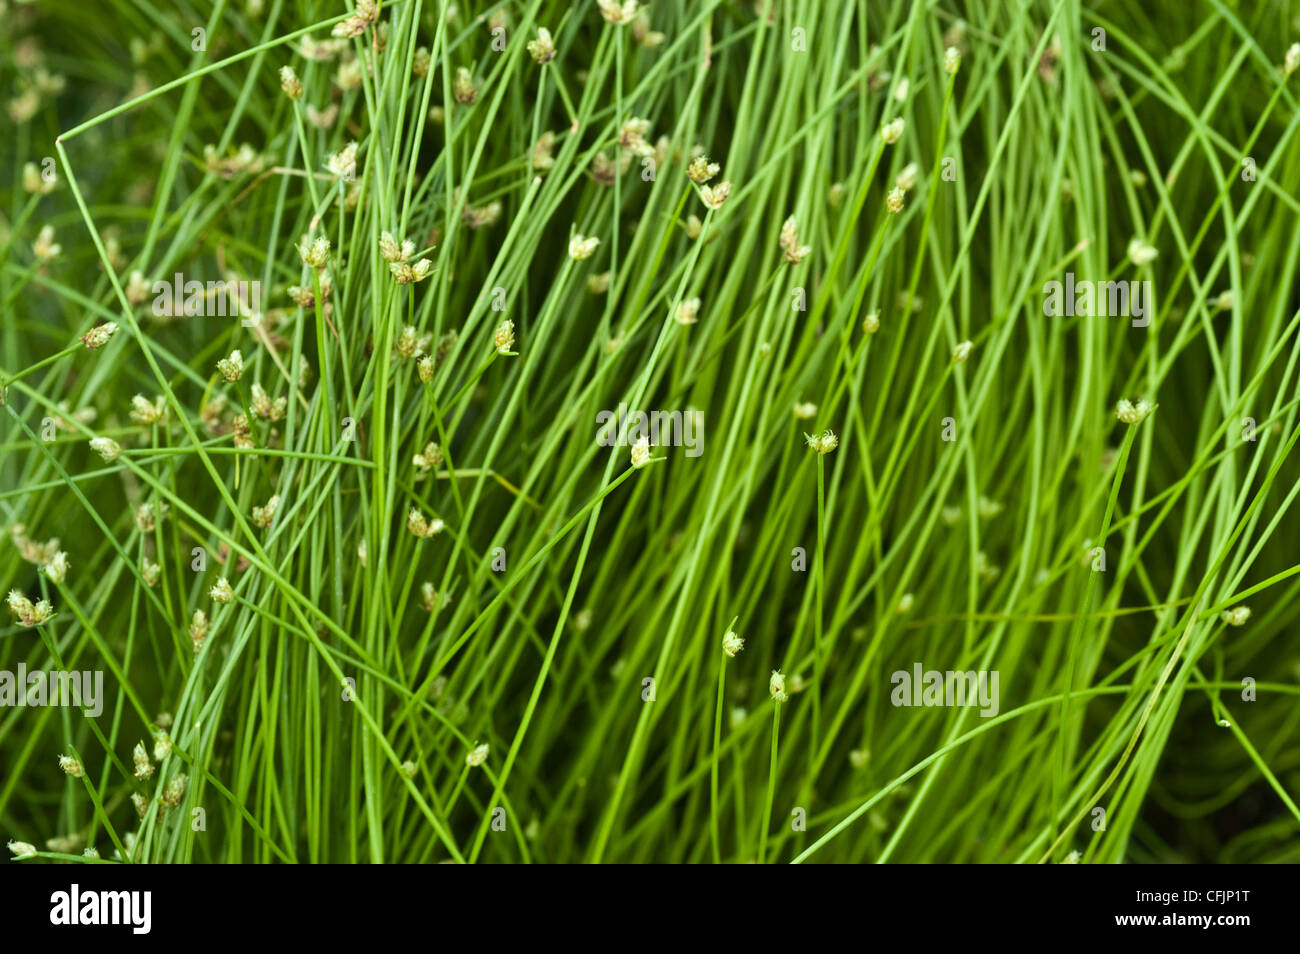 Fiber optic grass, Isolepis Cernua var Live wire - Stock Image